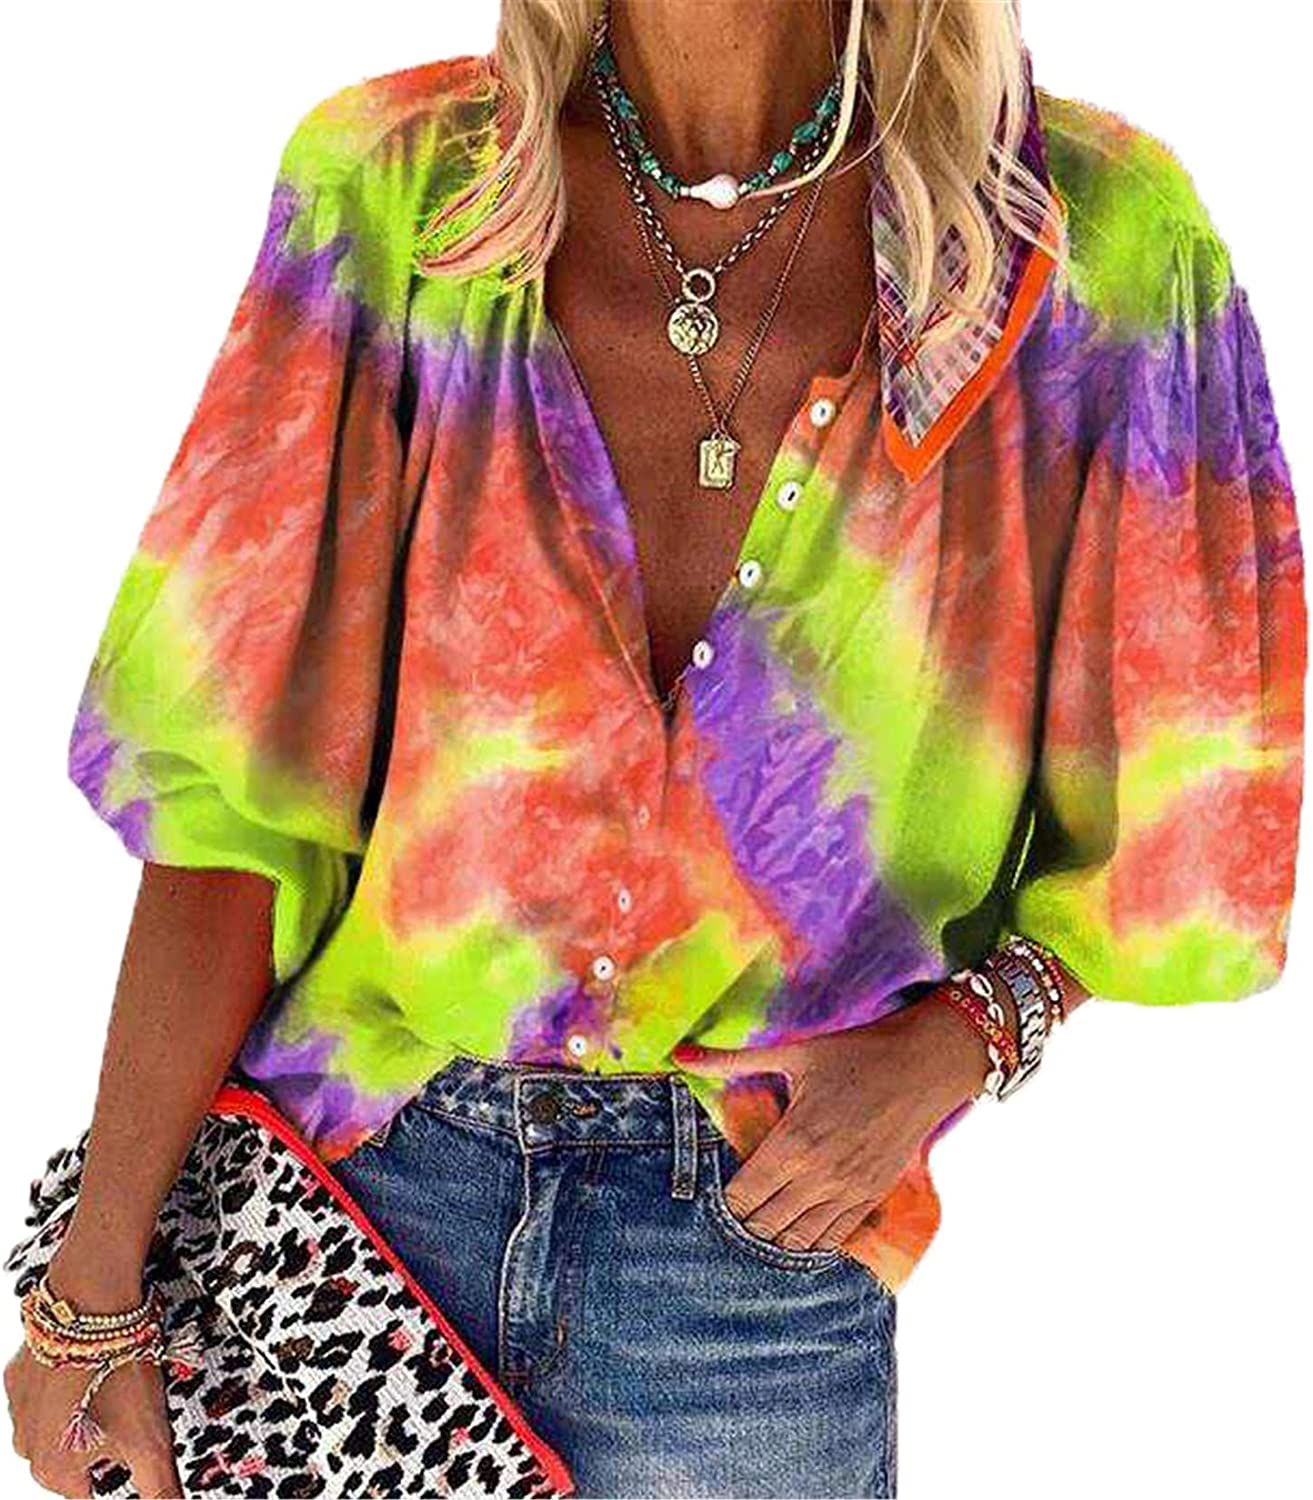 Andongnywell Tie dye Printed Blouses for Women Casual V Neck Womens Long Sleeve Button Down Tops Chiffon Shirts